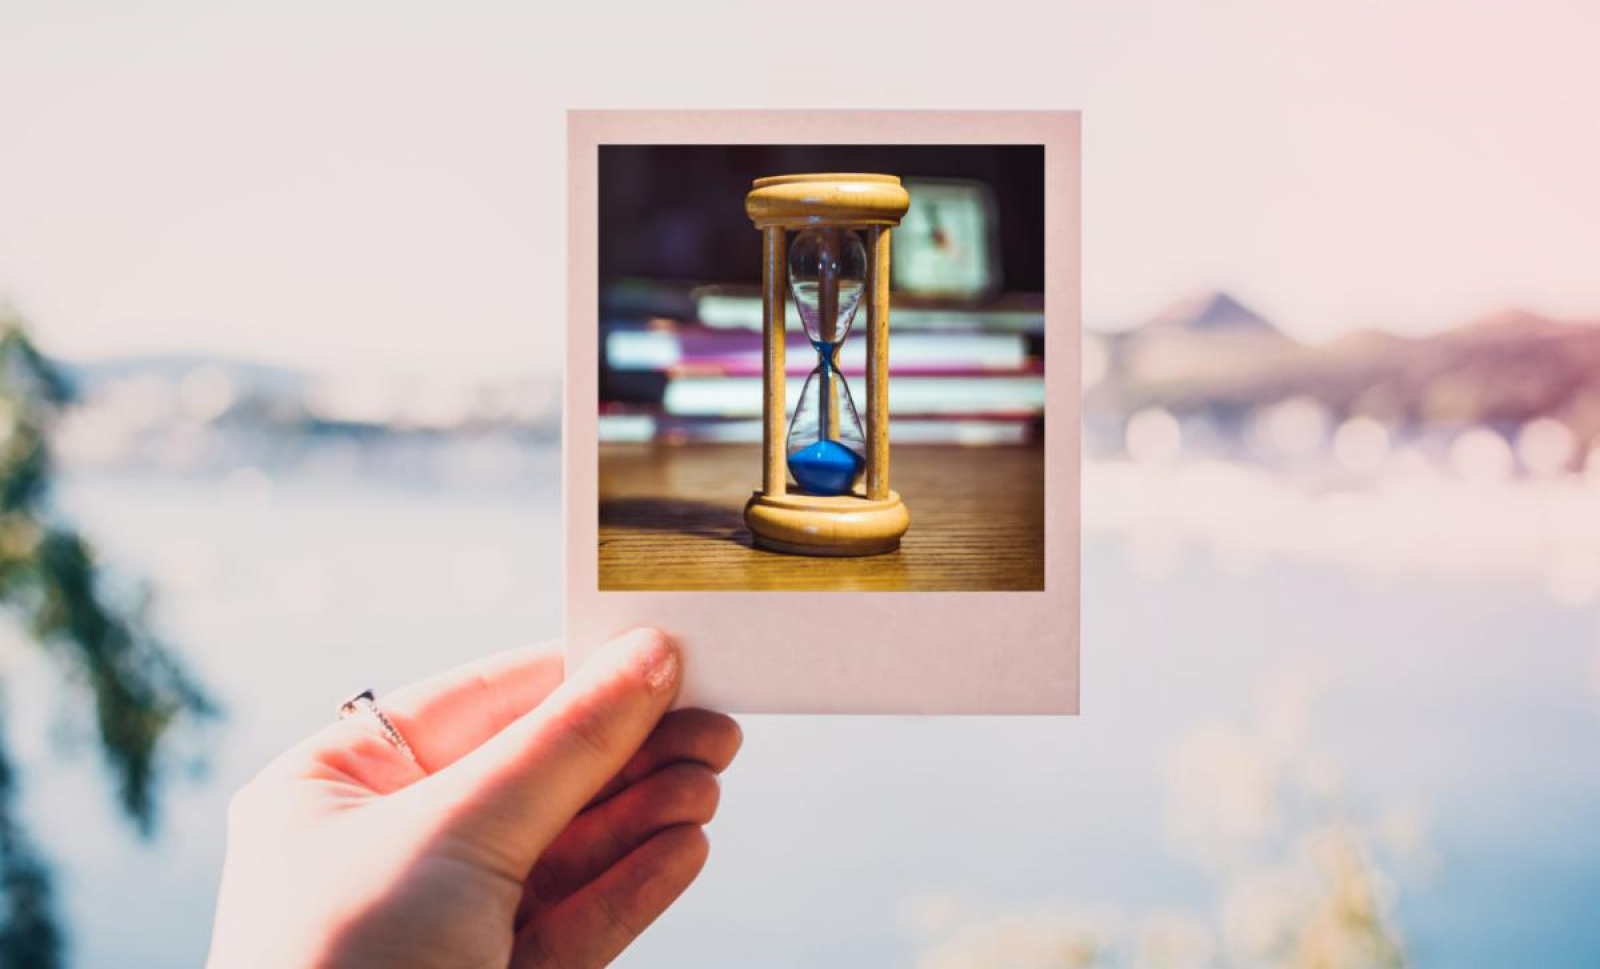 a hand holding up a Polaroid with an hourglass